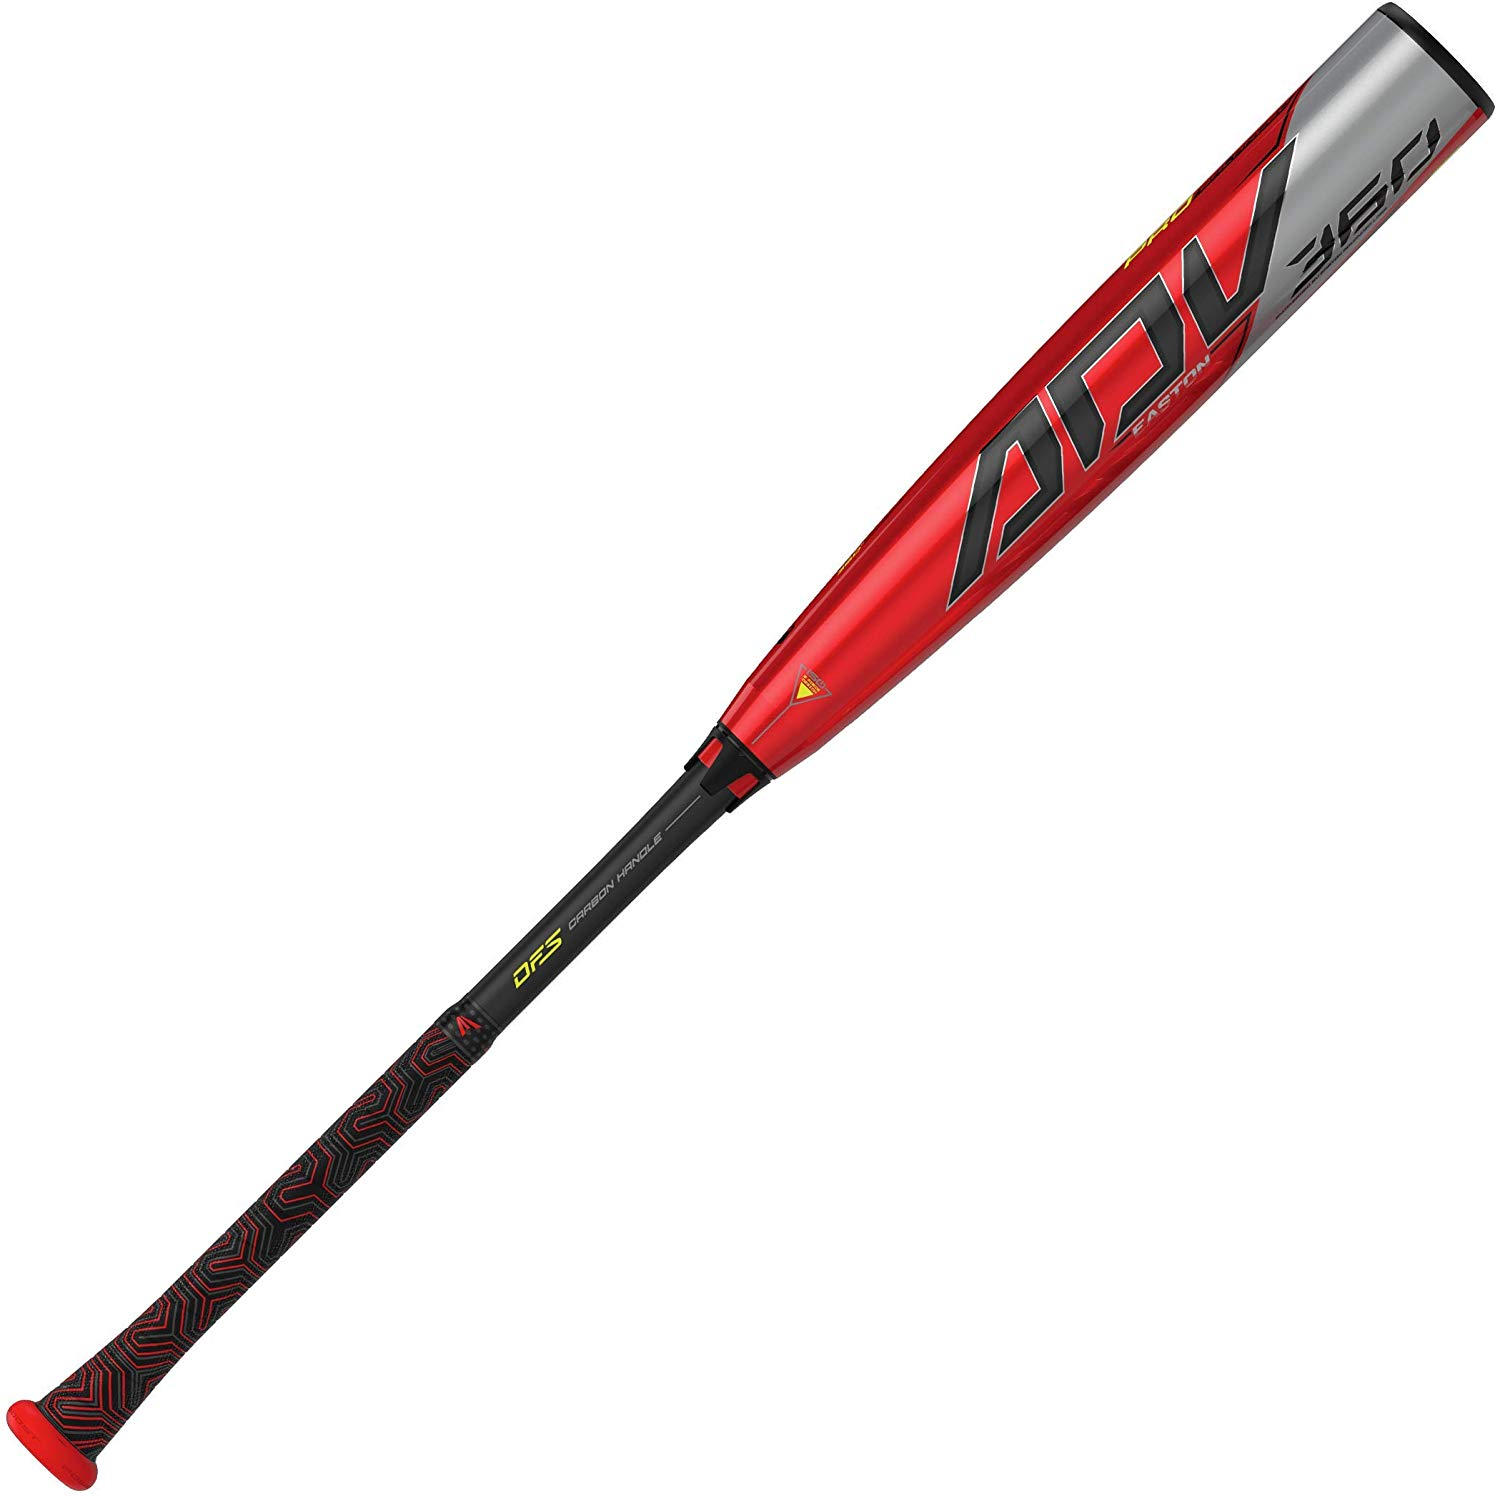 easton-adv-360-3-bbcor-2020-baseball-bat-33-inch-30-oz BB20ADV-3330 Easton 628412266151 Launch Comp - Launch Composite Technology combined with 360 Engineering for